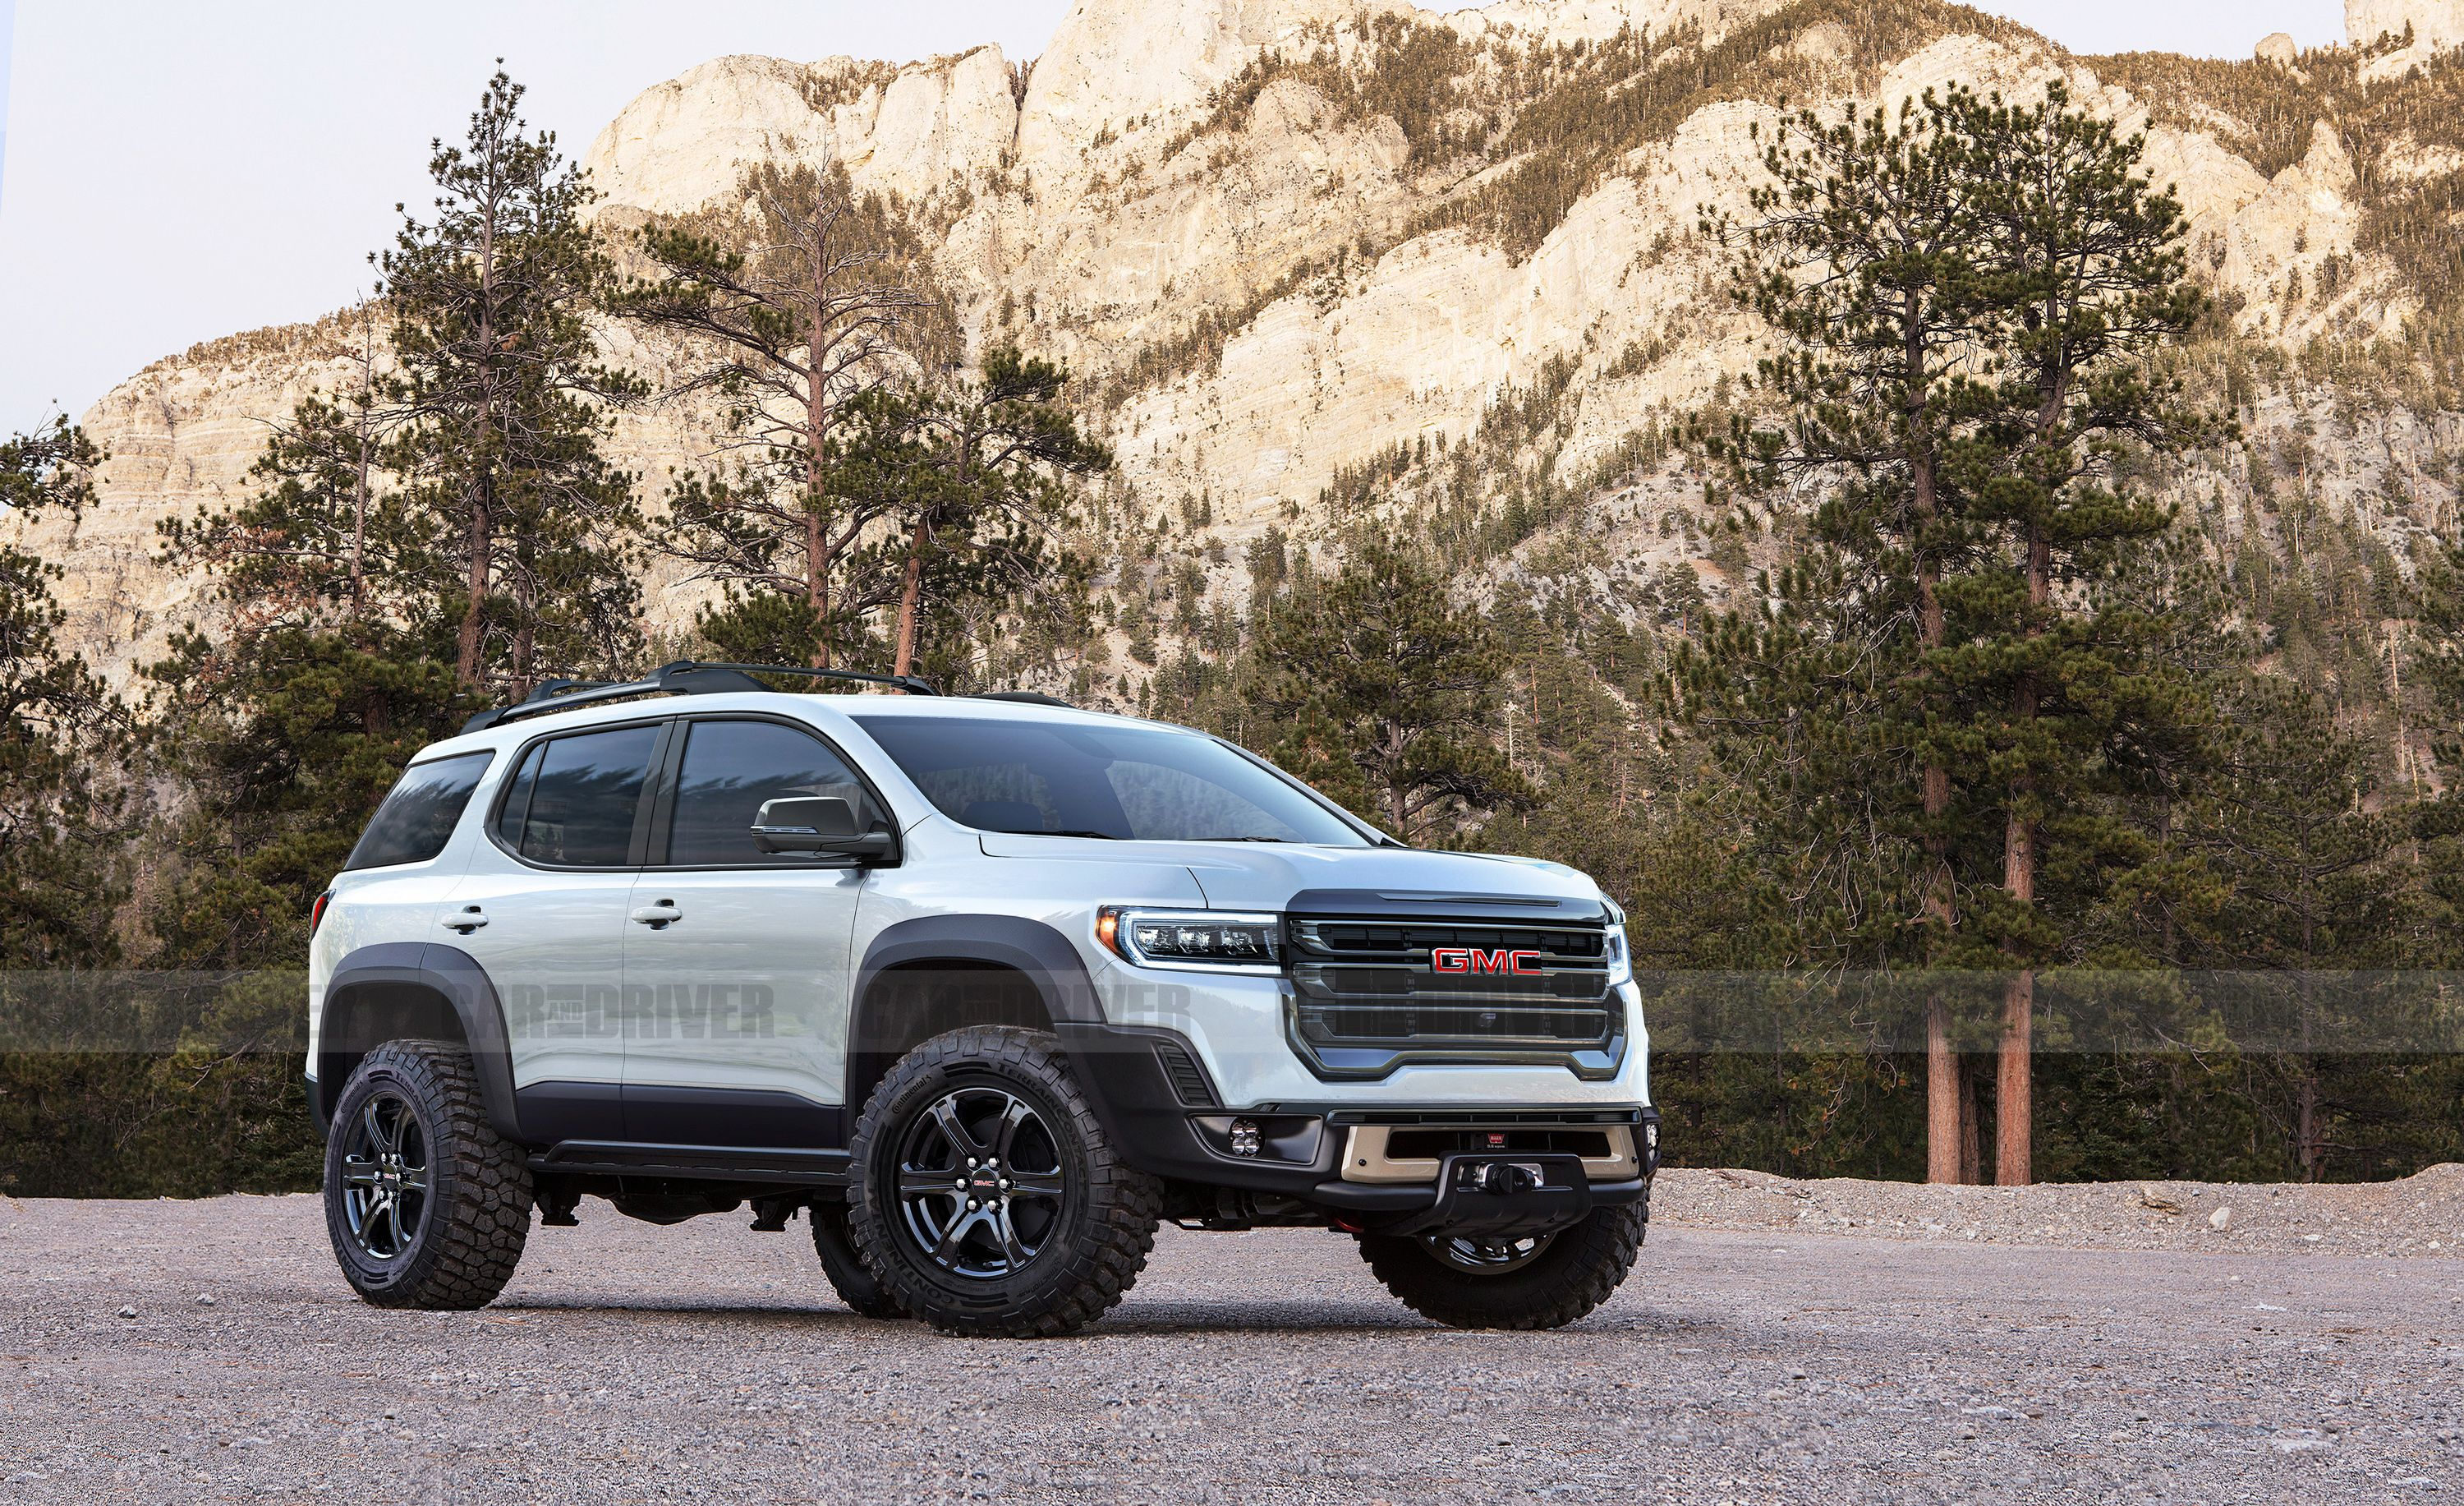 2022 Gmc Jimmy Future Off Road Suv